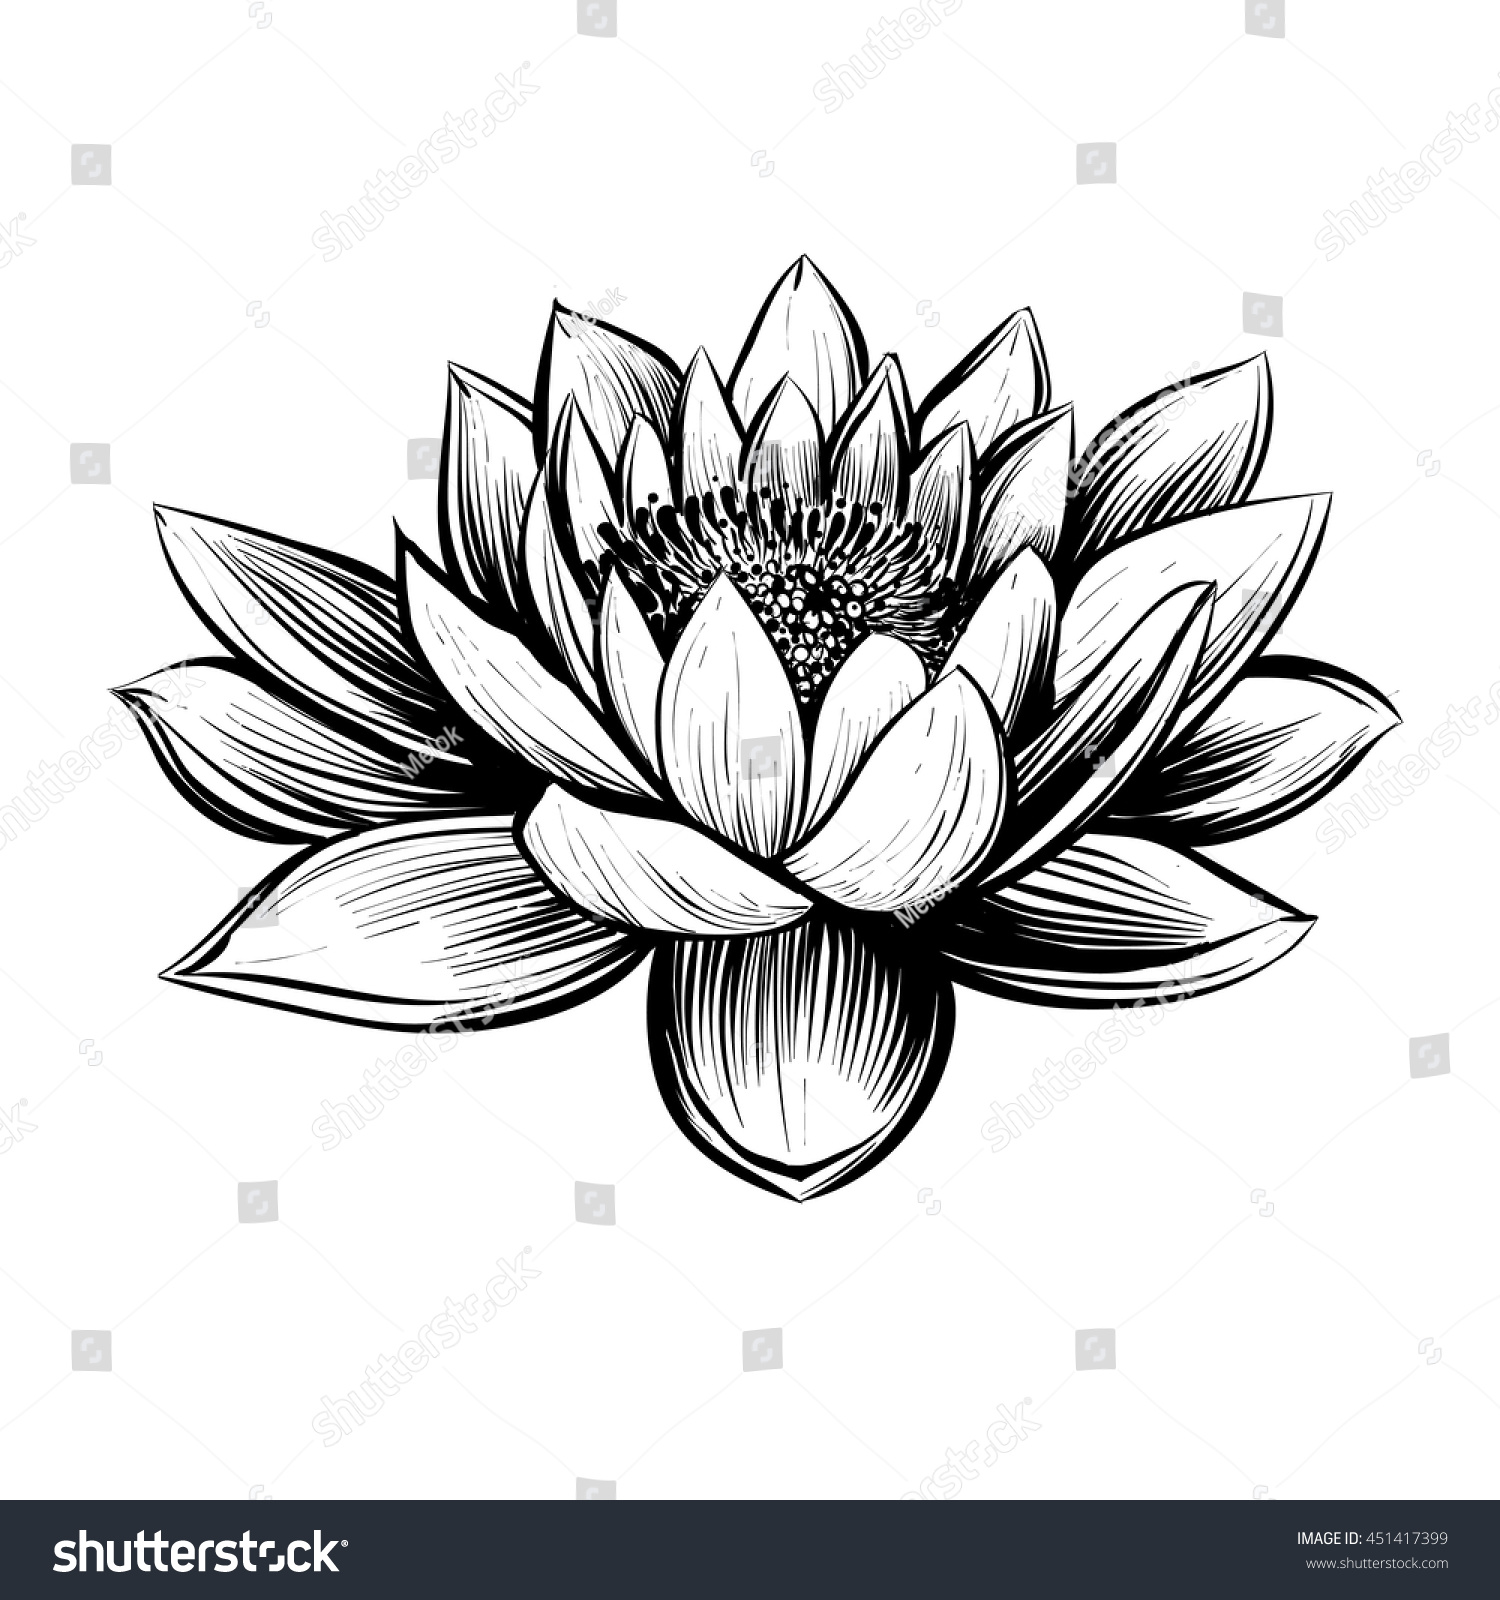 Water Lily Stencil Black And White: Stock-vector-vector-water-lily-lotus-illustration-black